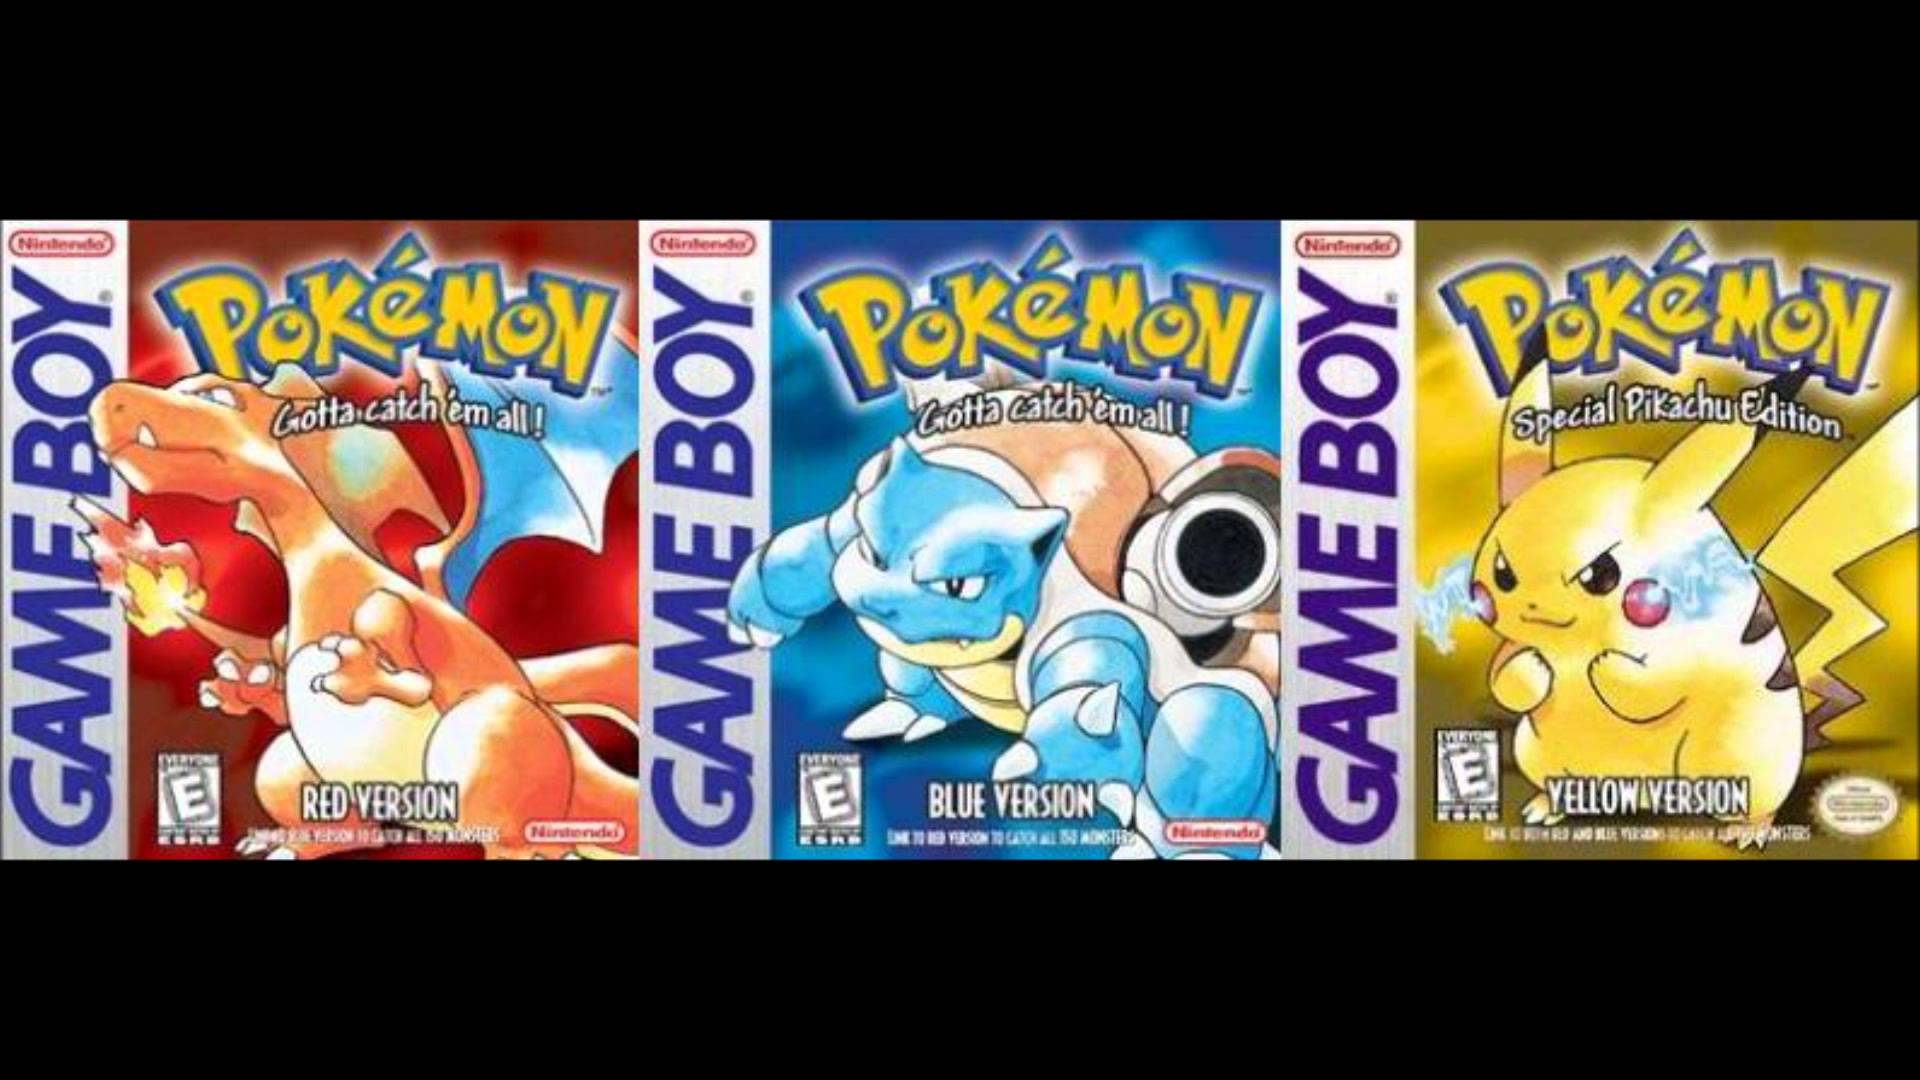 Modojo | Pokémon Red, Blue, and Yellow Are Available Now on the 3DS eShop